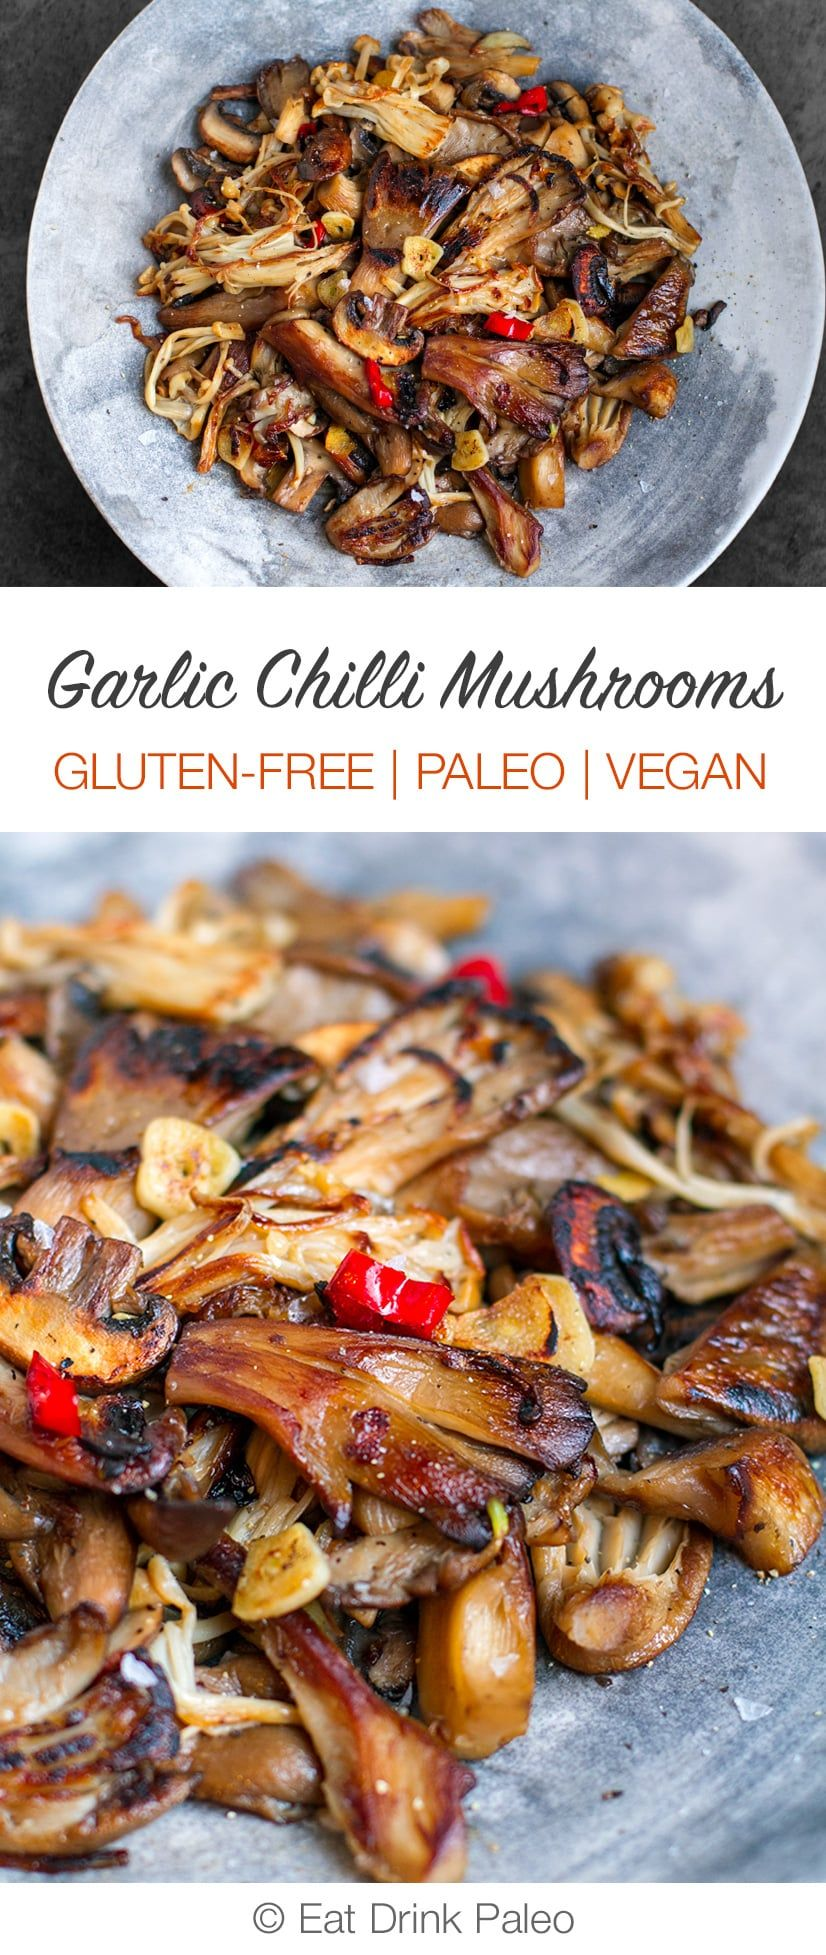 Garlic Chilli Mushrooms